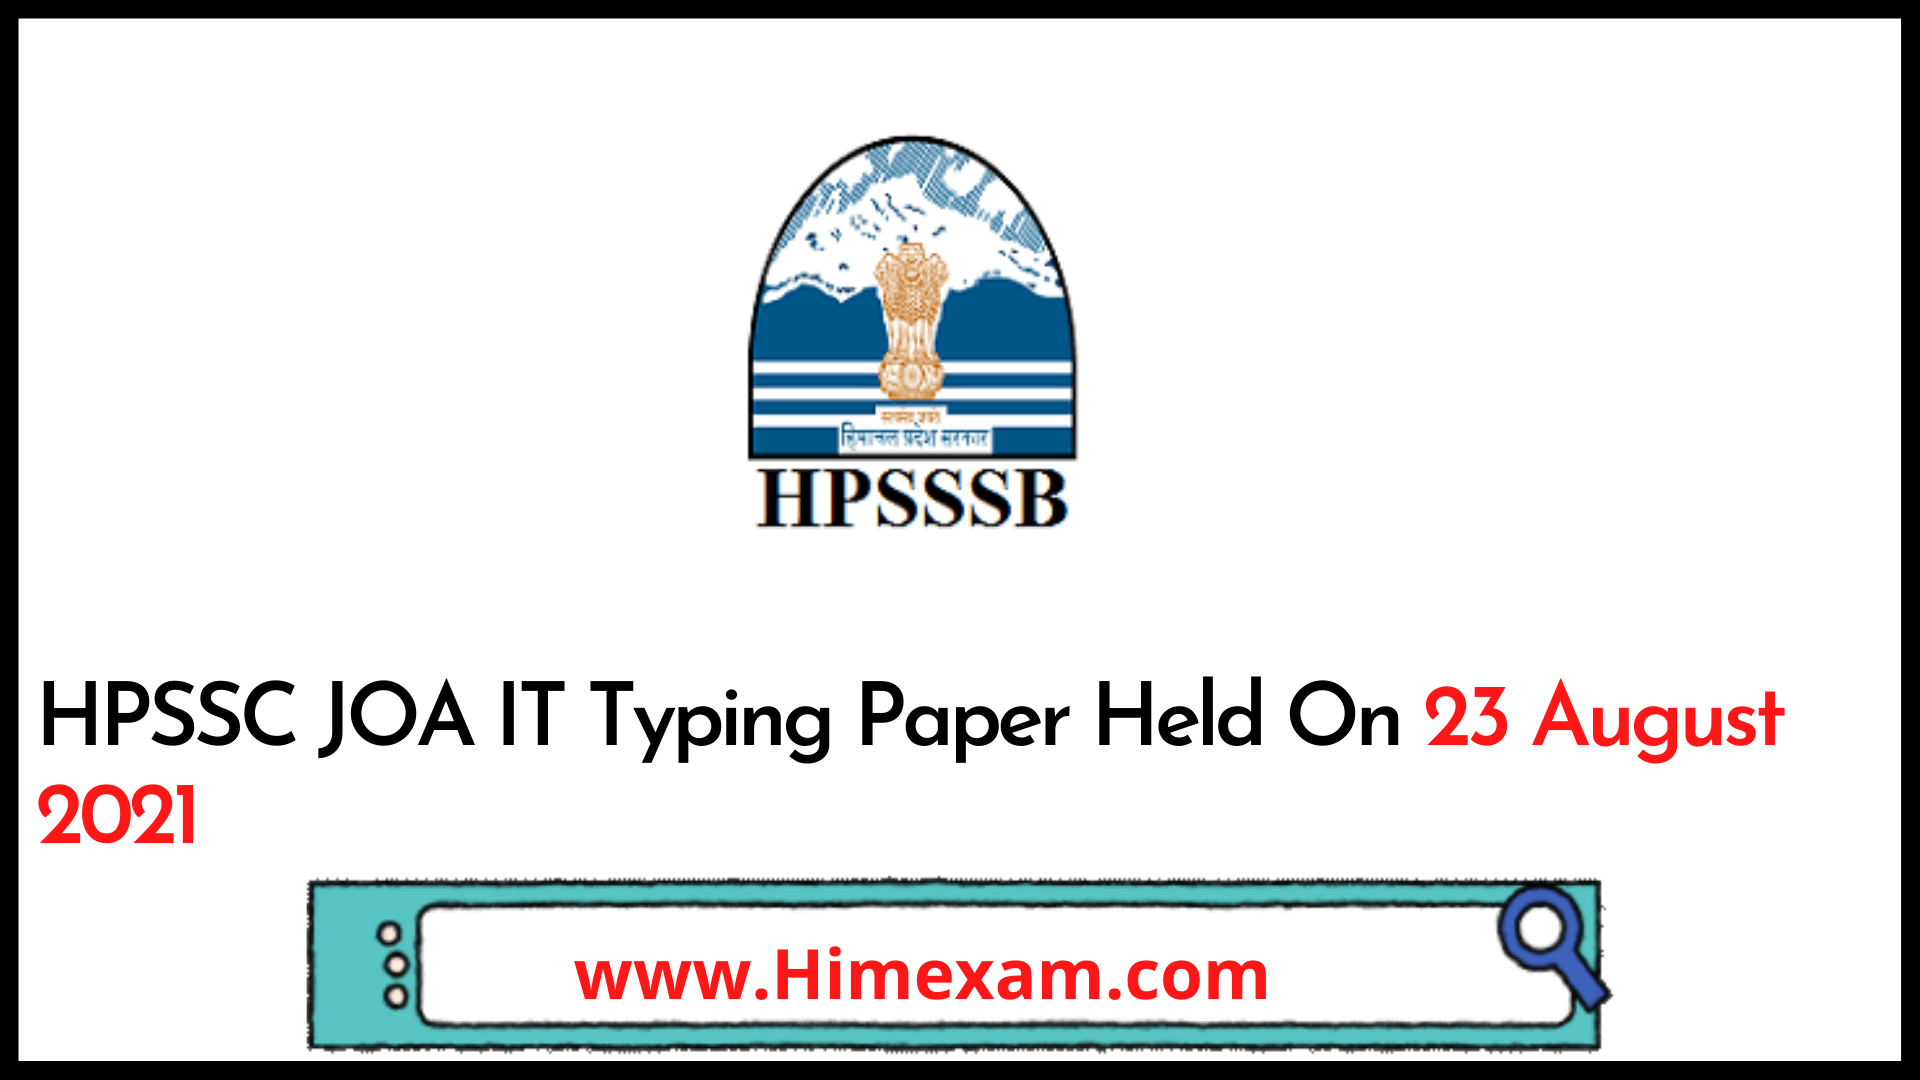 HPSSC JOA IT Typing Paper Held On 23 August 2021